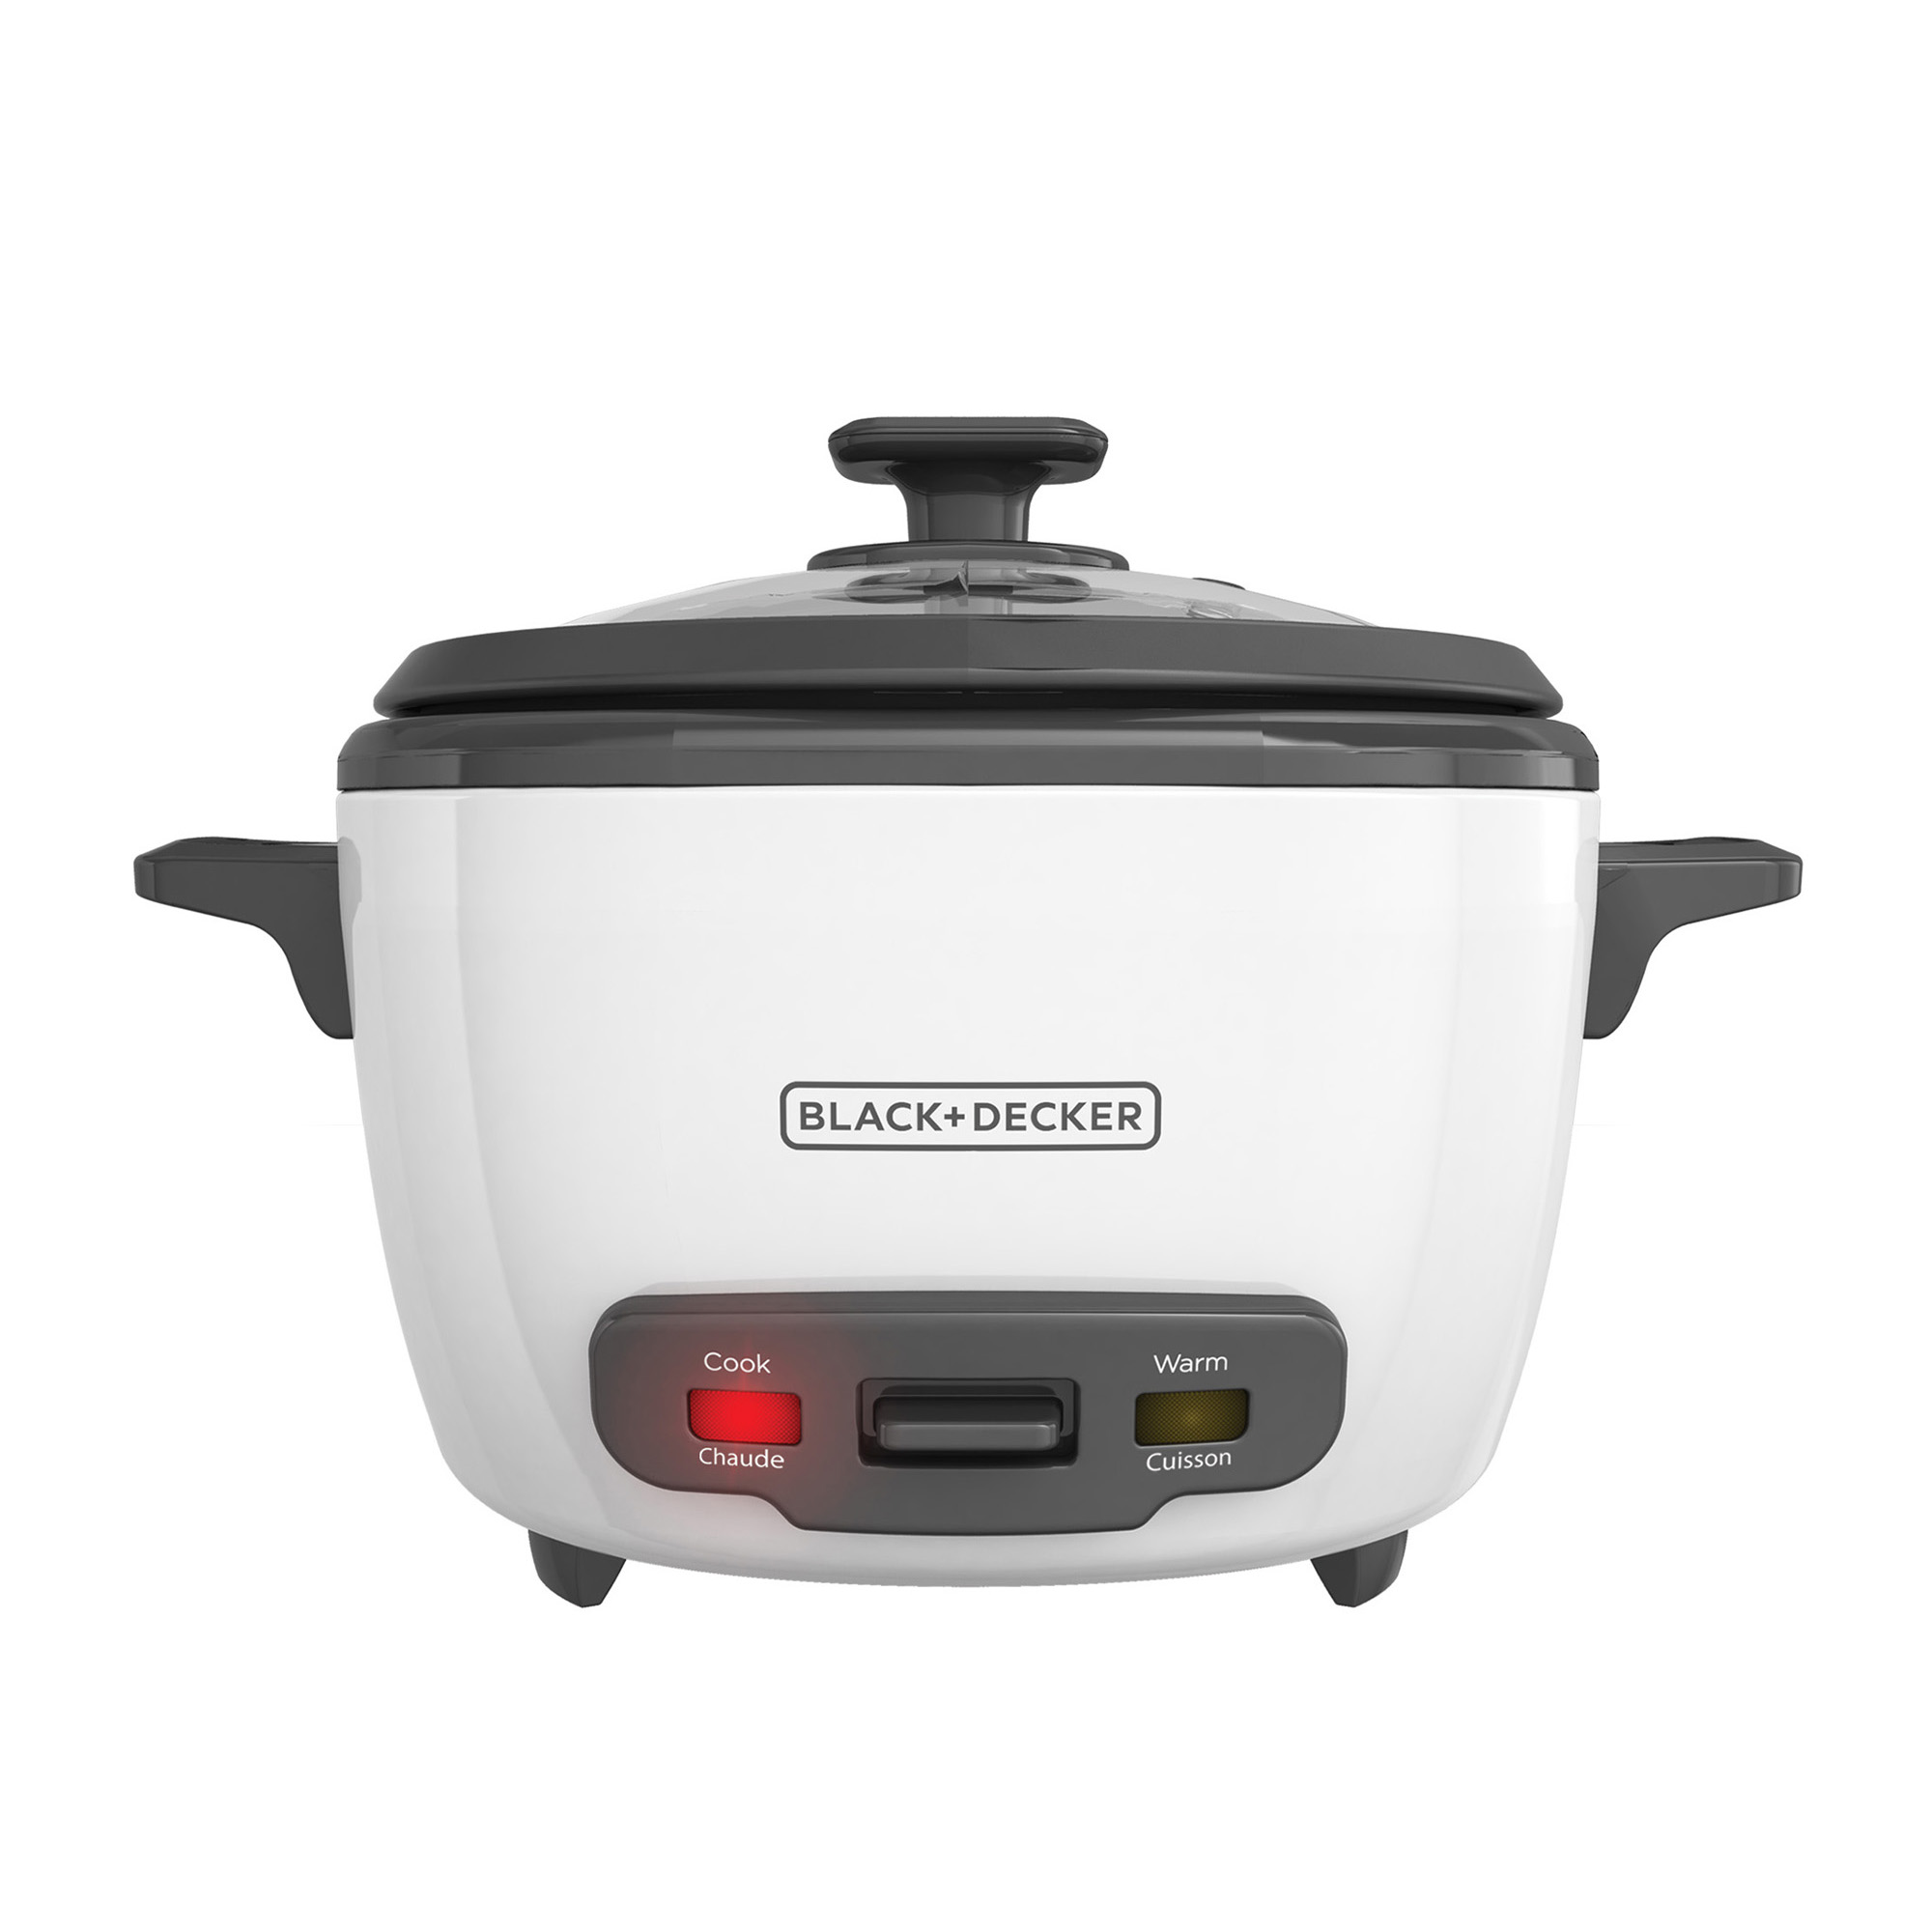 14 cup rice cooker rc514 black decker rh blackanddeckerappliances com president's choice rice cooker pc521 manual Rival Rice Cooker Instruction Manual